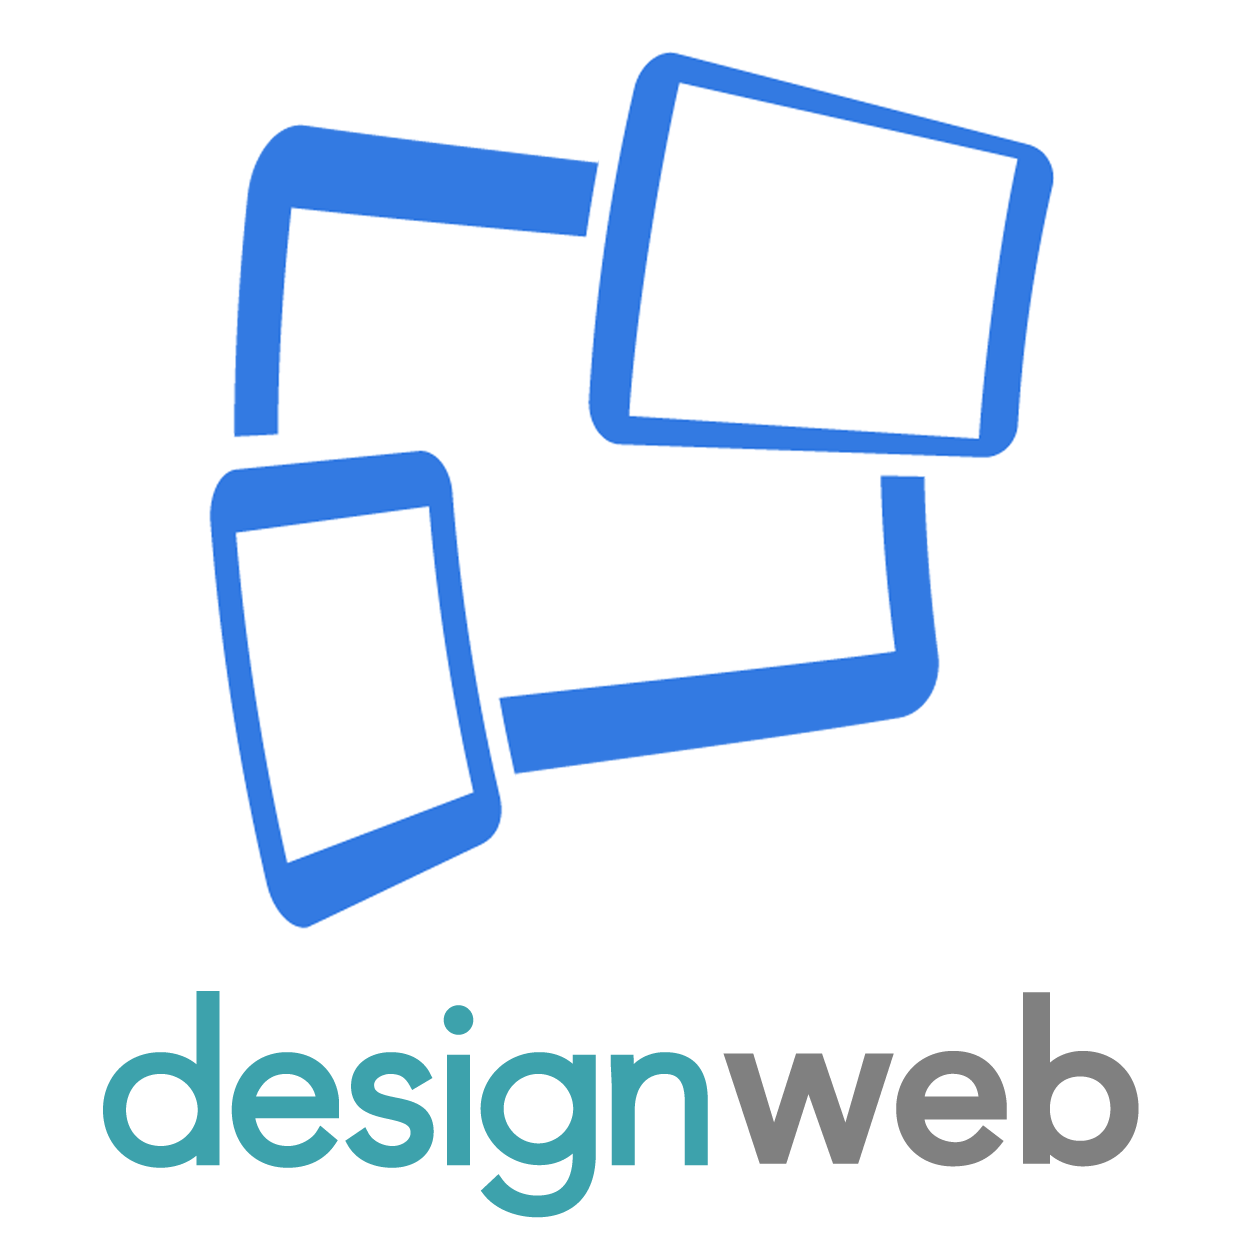 Design Web logo